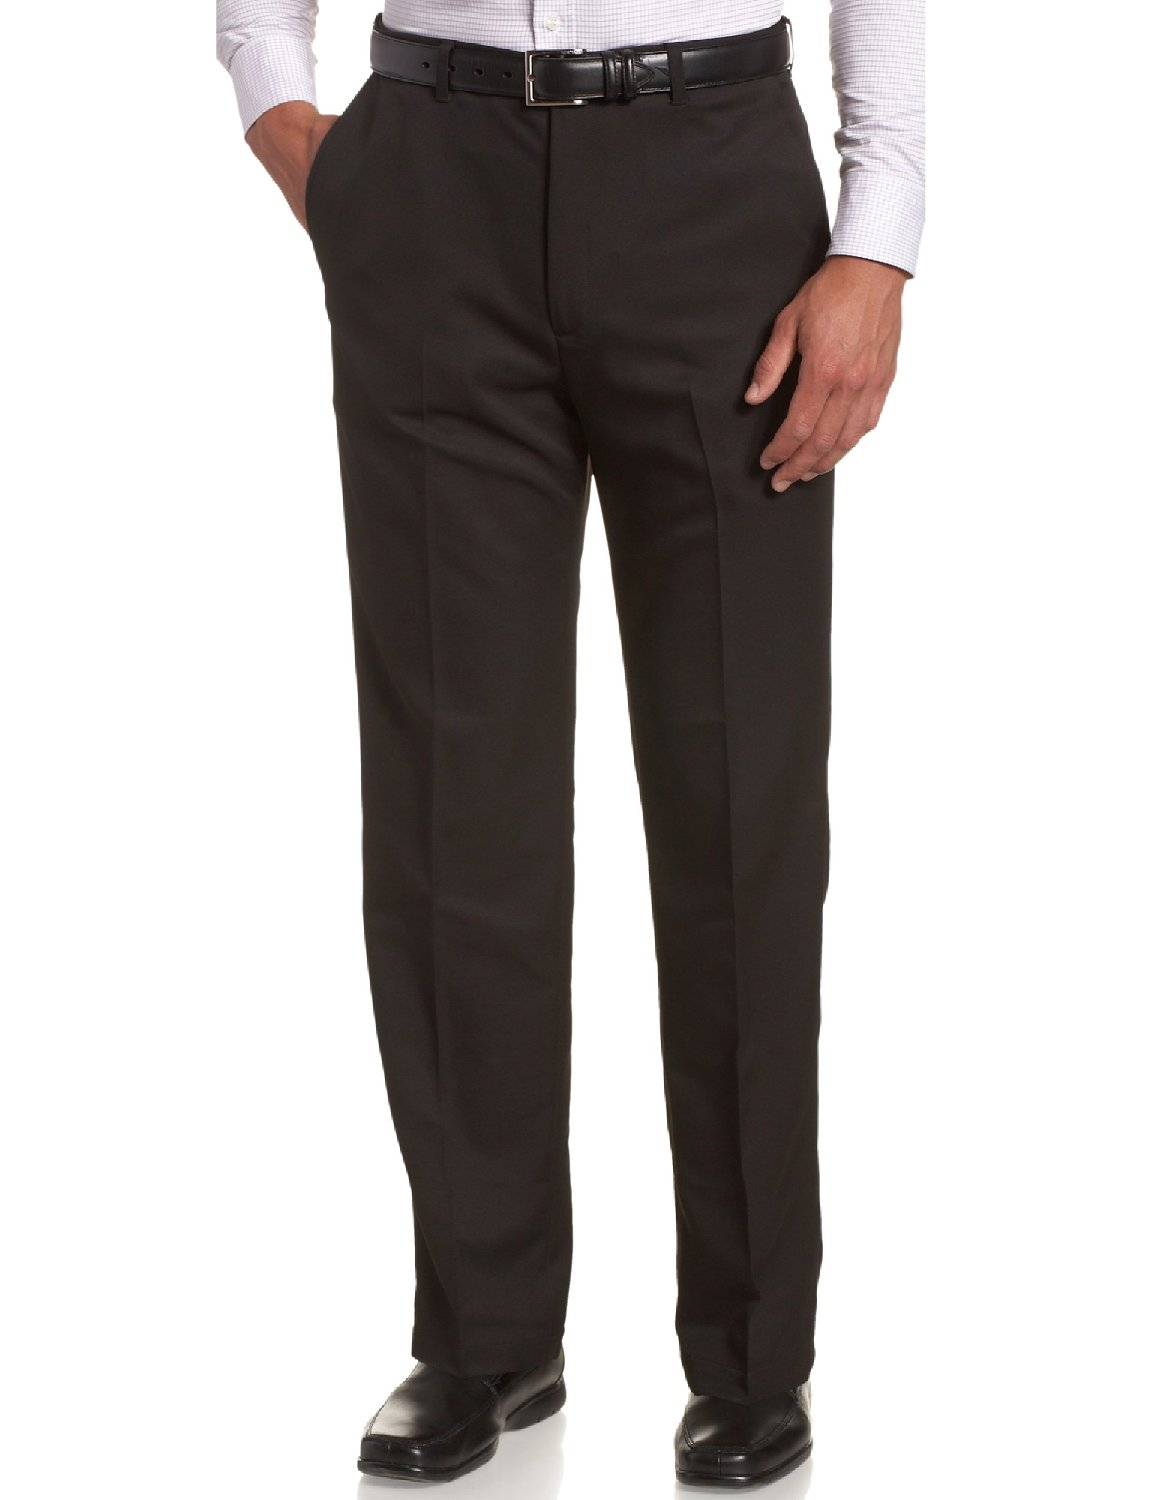 Sportoli Men's Cool Classic Fit Hidden Expandable Waist Plain Front Dress Pants